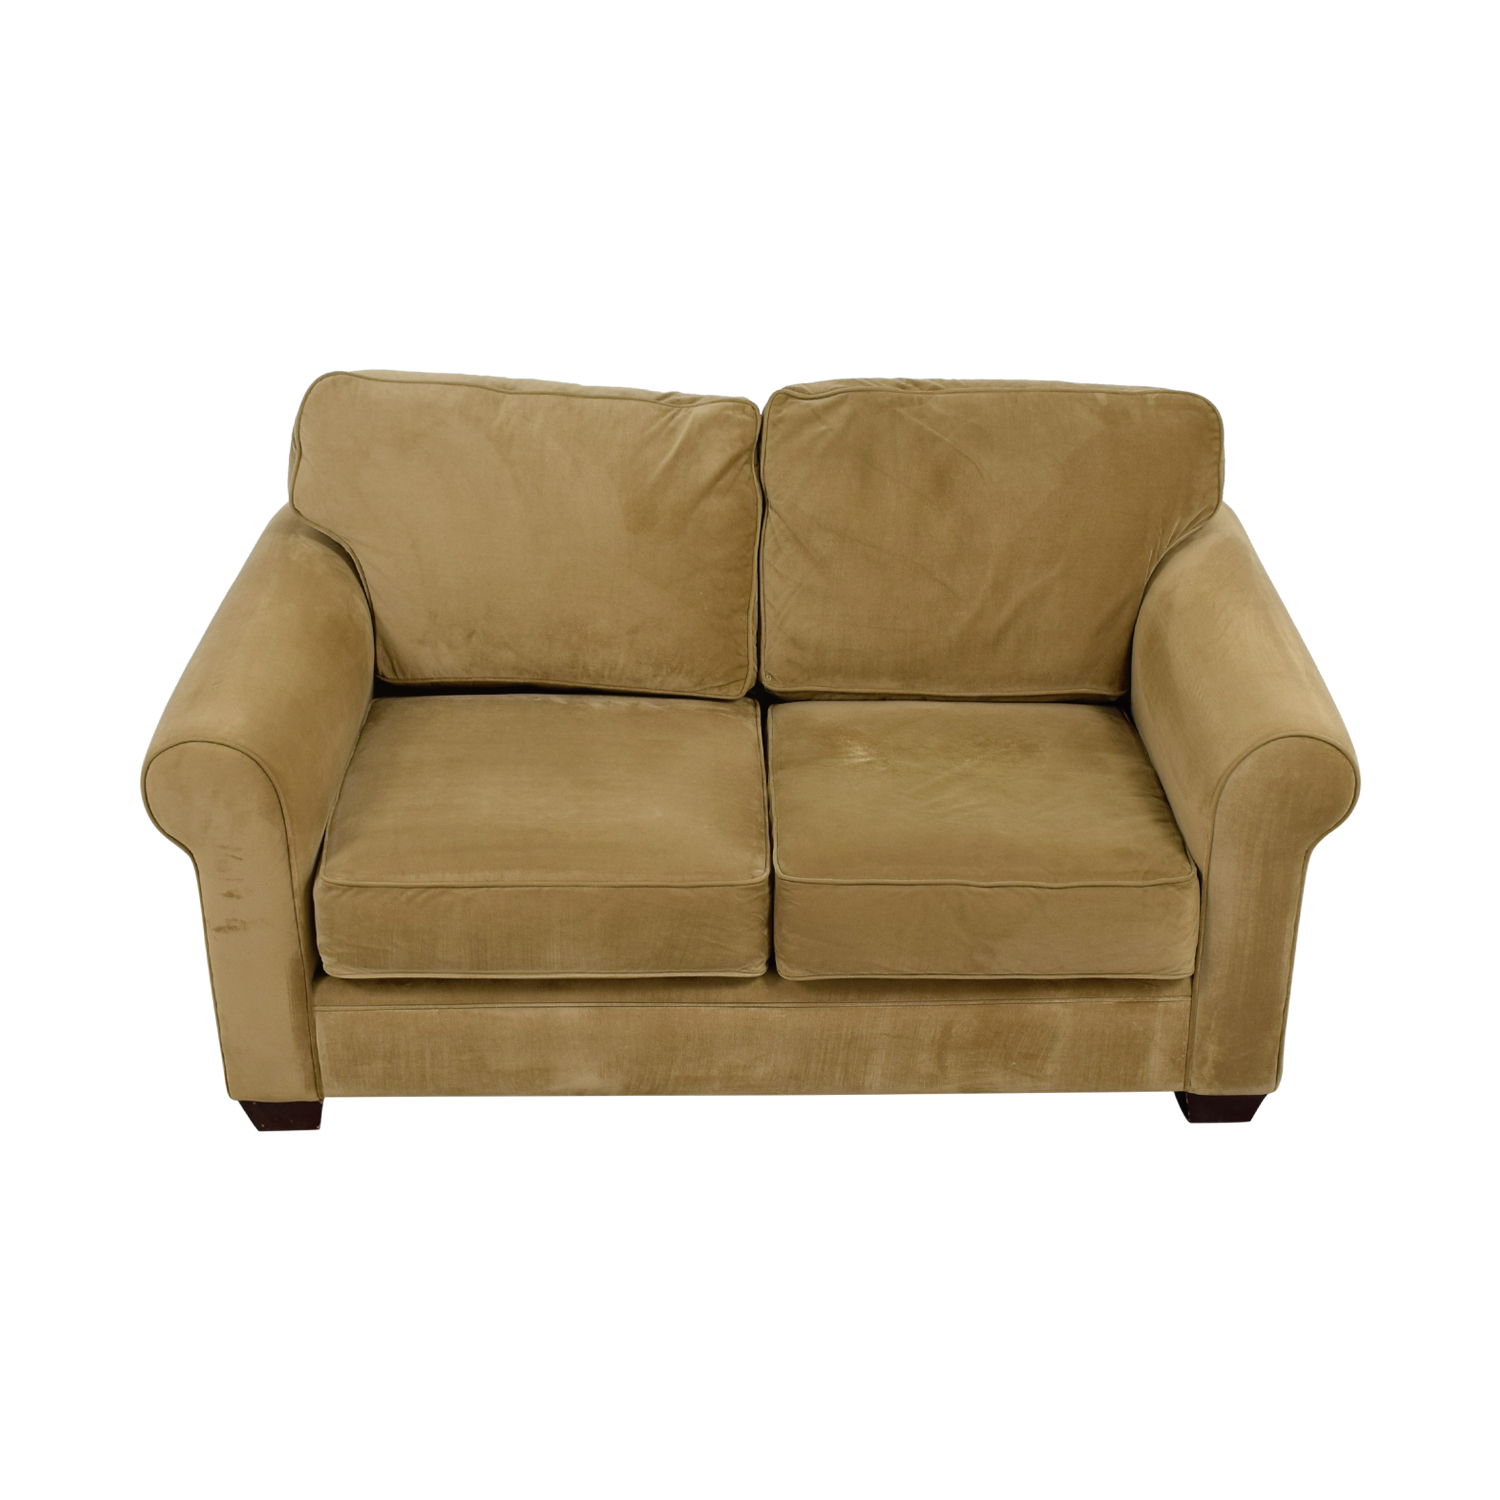 Macy's Macy's Tan Two-Cushion Loveseat Loveseats